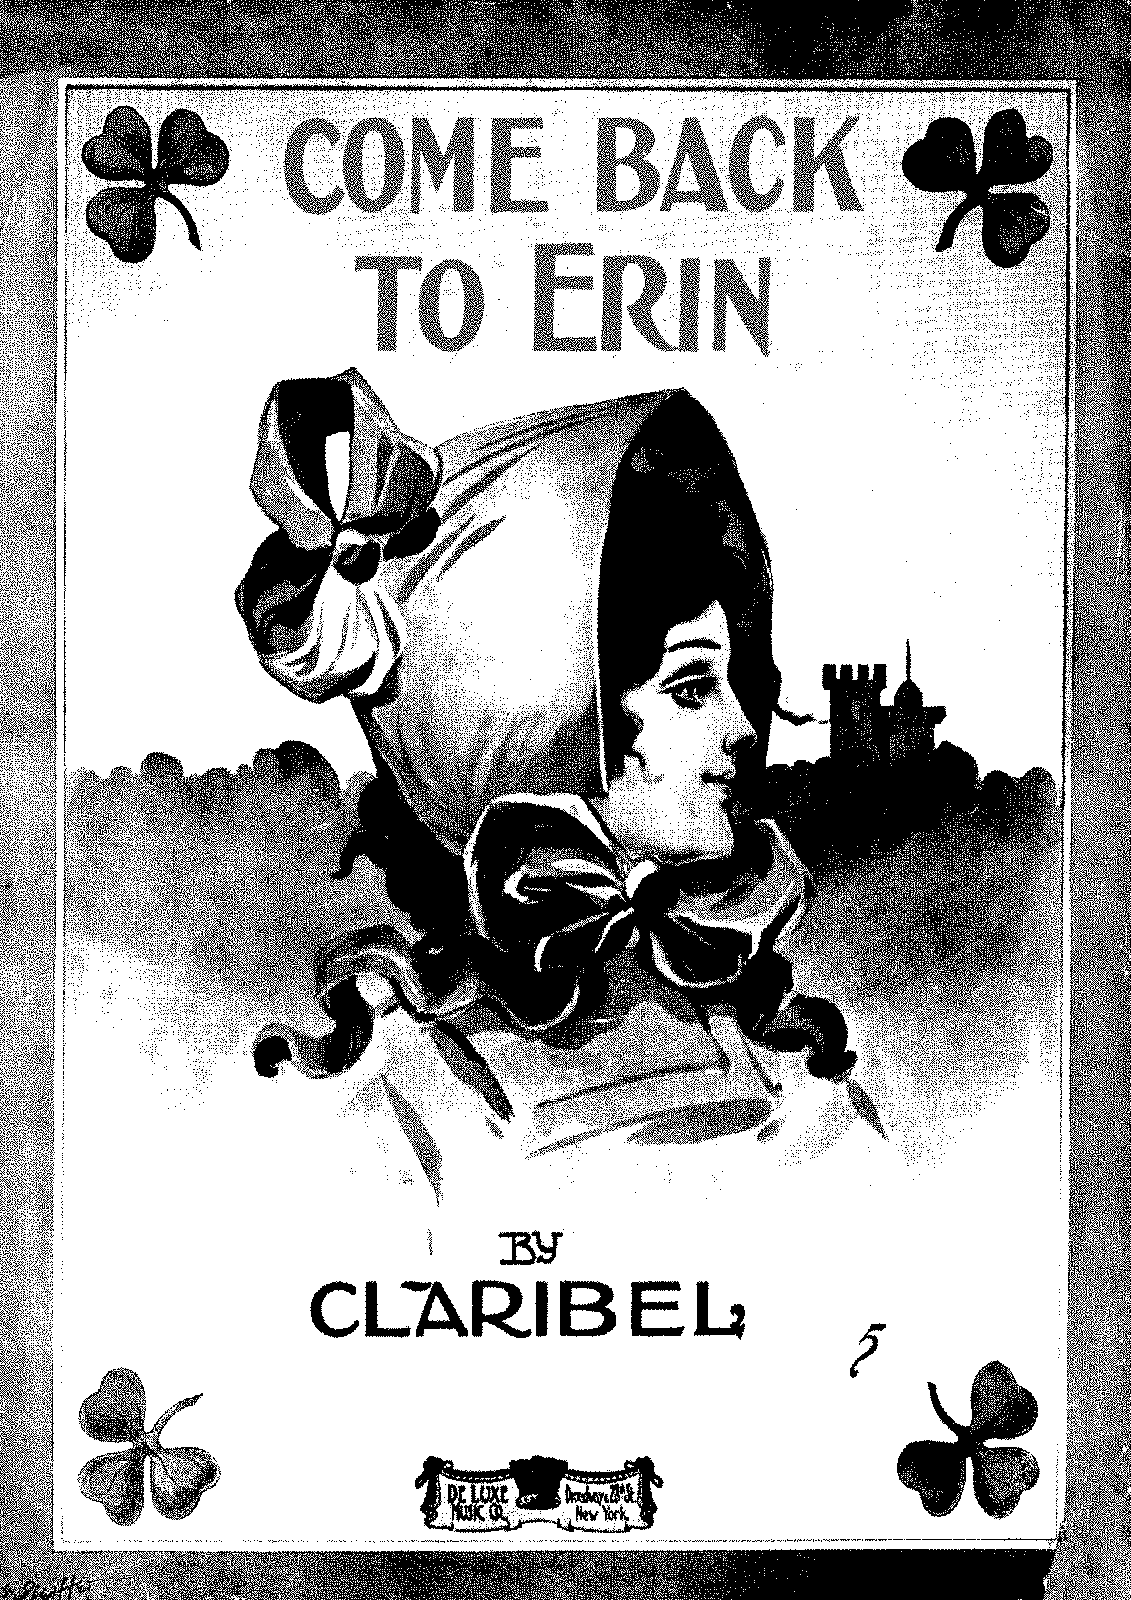 PMLP323392-Claribel - 1830-1869 - Song - Come back to Erin.pdf